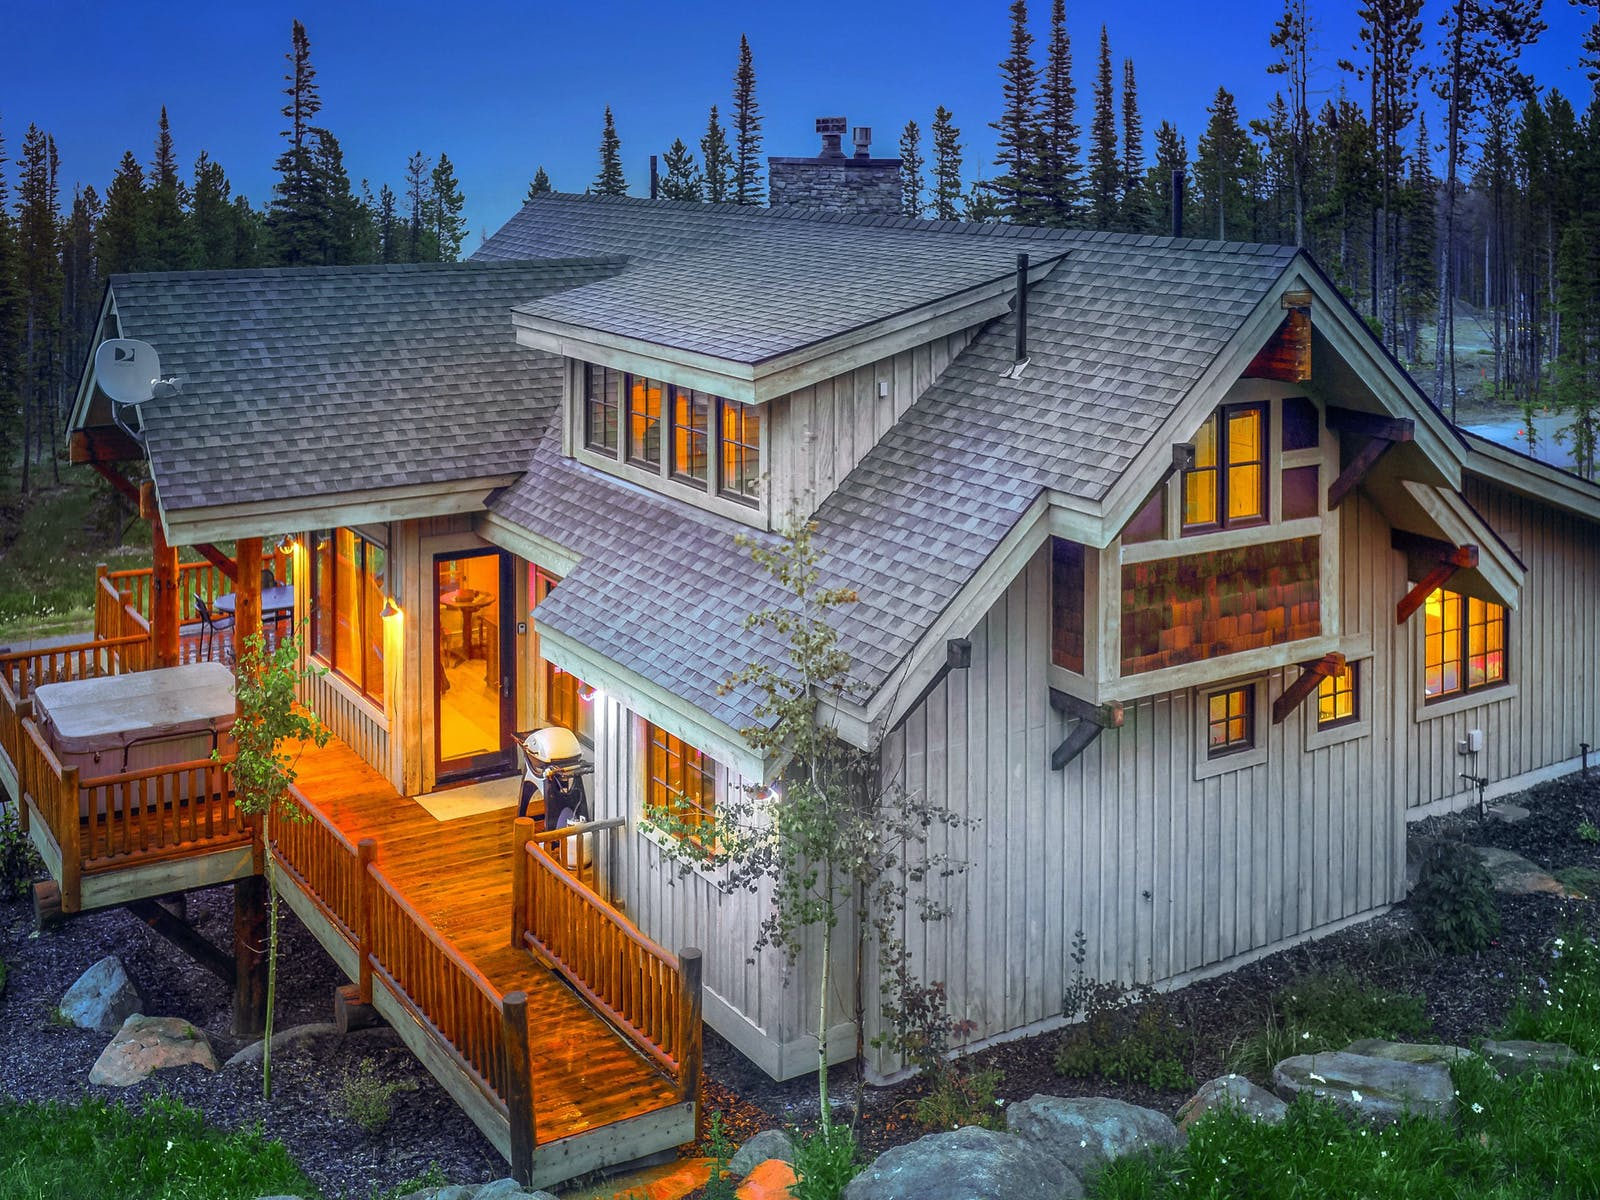 large cabin rental in Big Sky, MT lit up at night